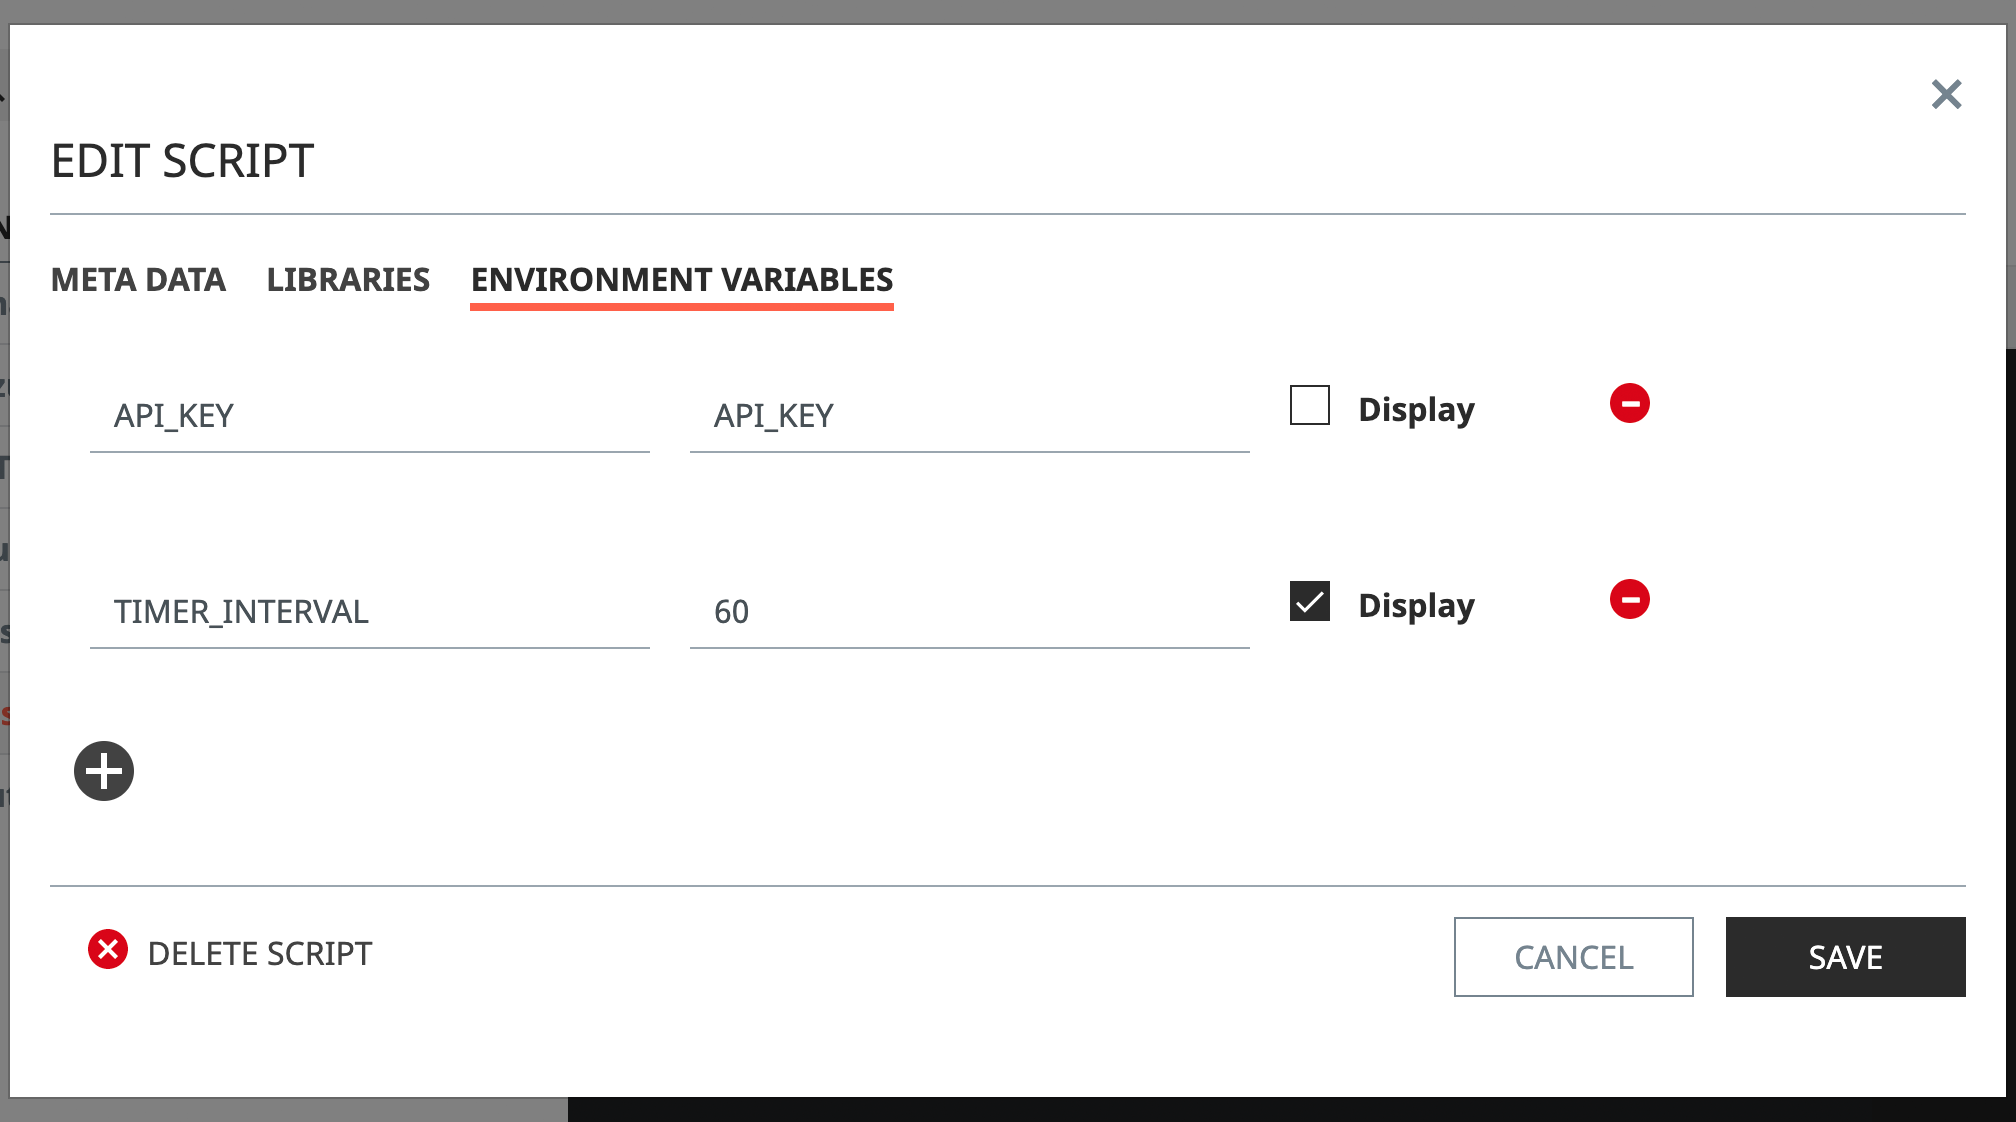 Select the setting tab and select the environment variable in the displayed modal window. You can see that you are entering Environment Variables.